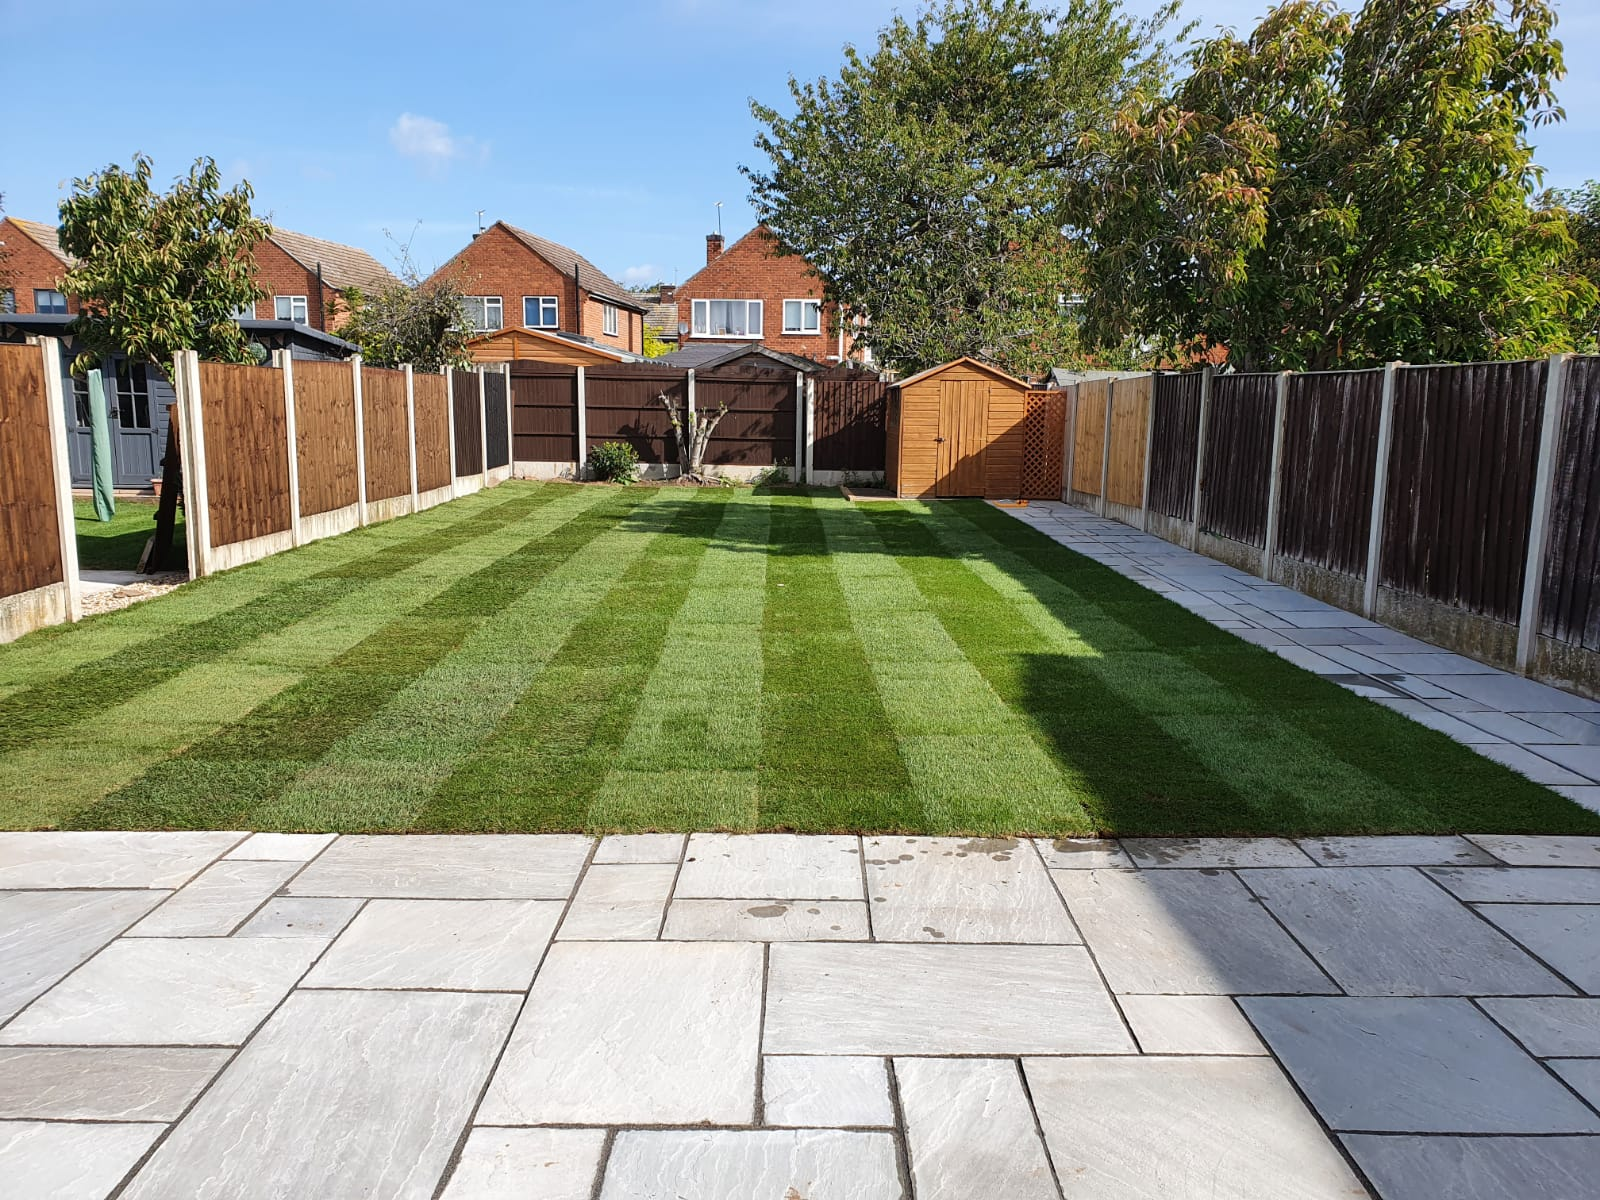 Newly laid lawn and patio